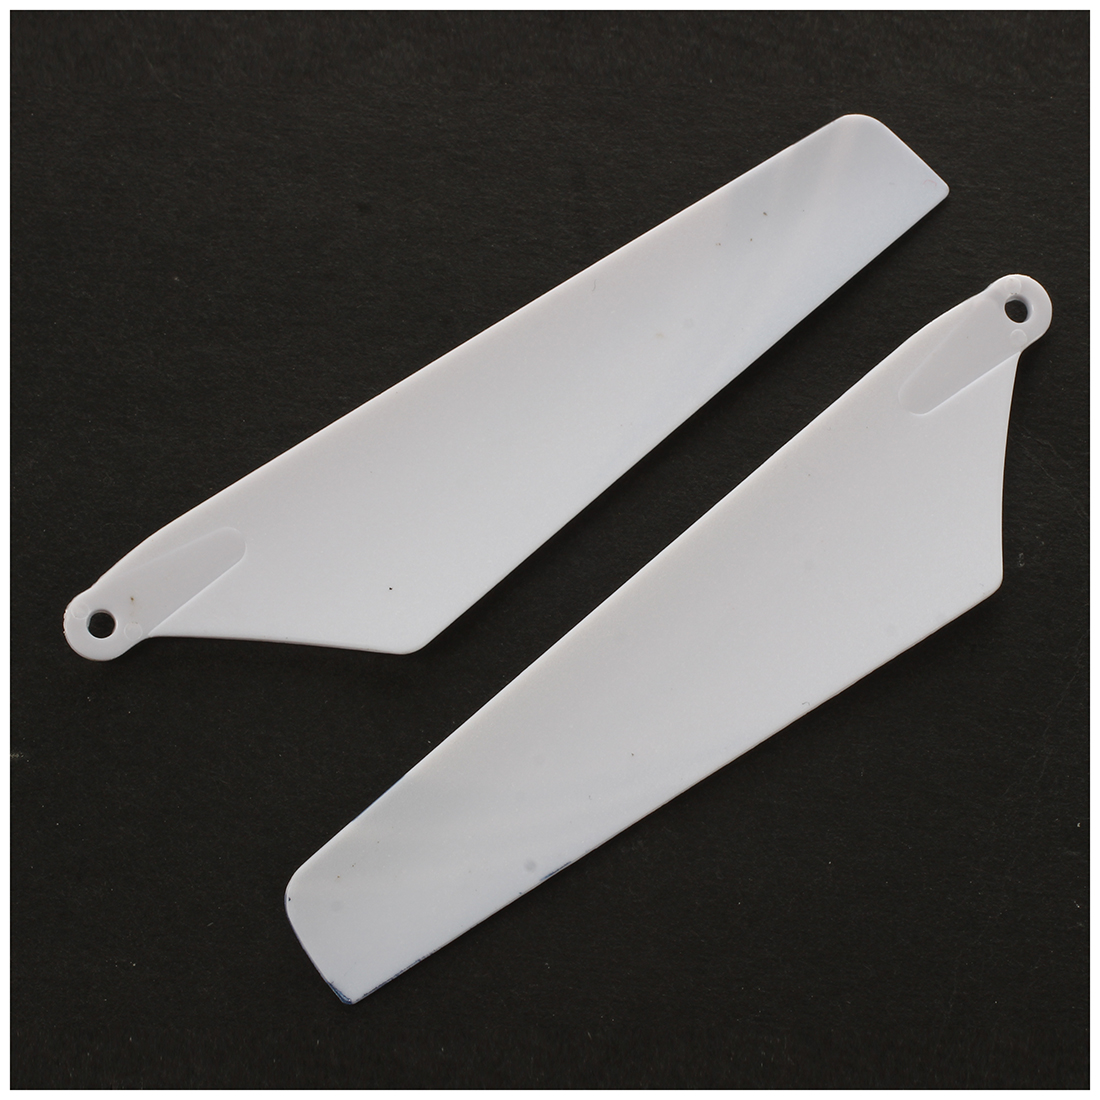 New Syma 4pcs spare blades for helicopter rotor rc S107, BlueNew Syma 4pcs spare blades for helicopter rotor rc S107, Blue